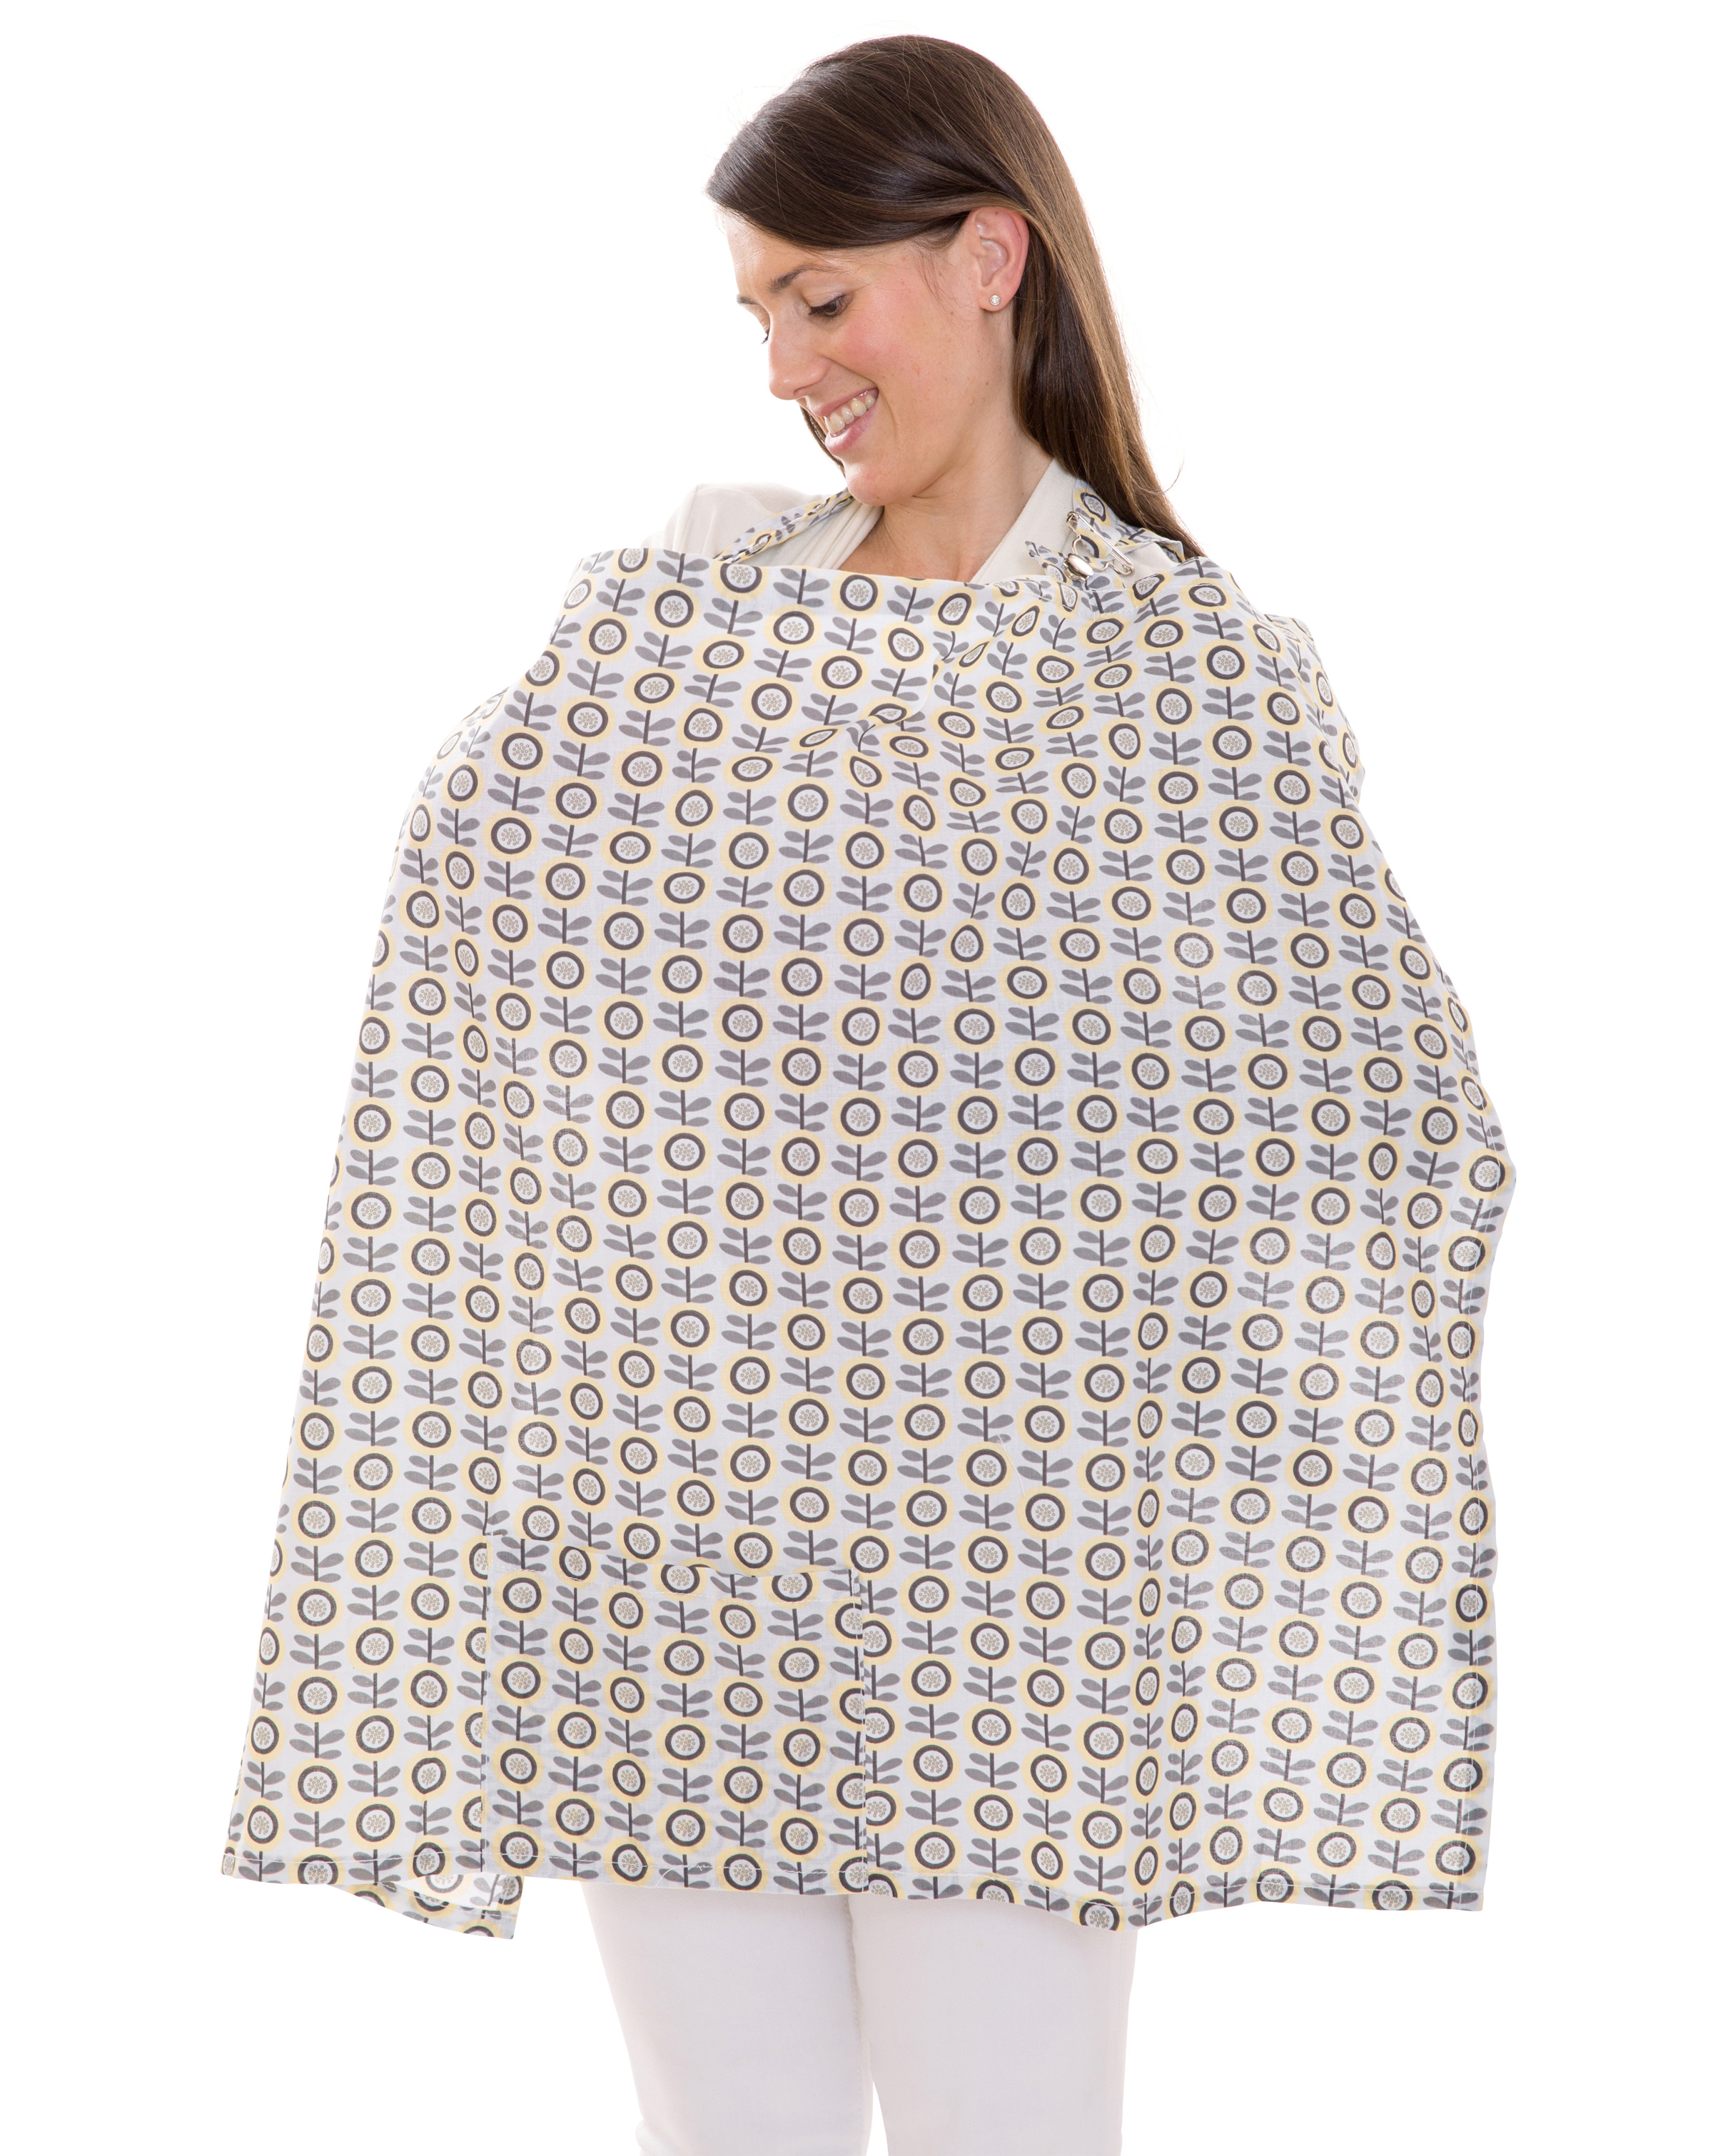 Nursing Cover | Breastfeeding Covers and Accessories - My Brest Friend